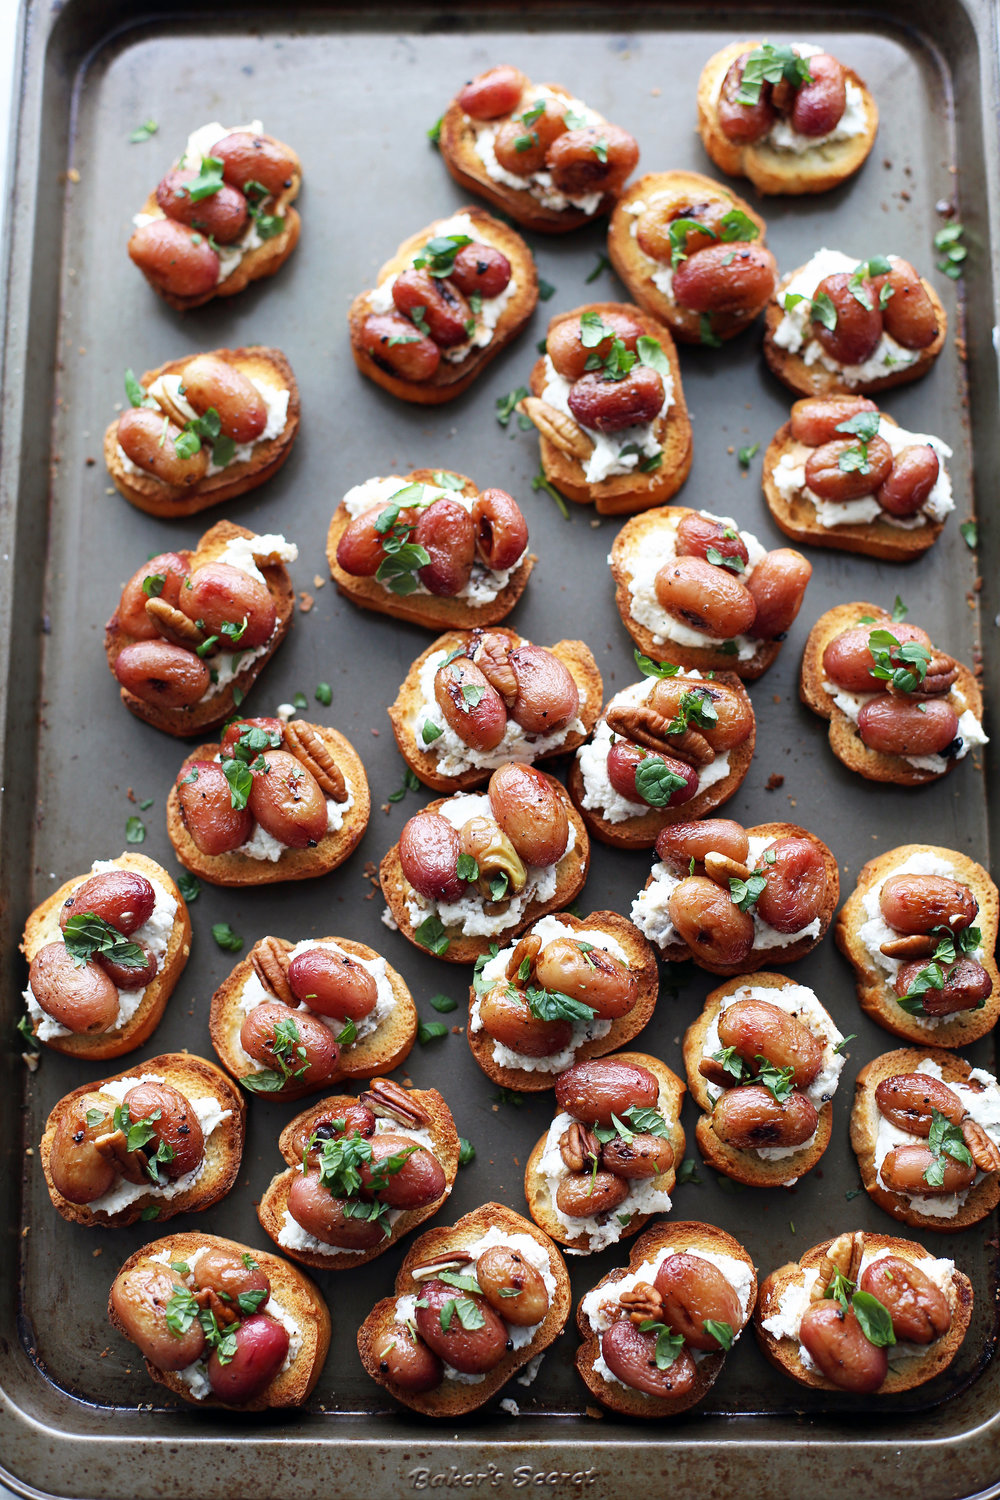 Overhead view of balsamic roasted grape and goat cheese crostini on a baking sheet.